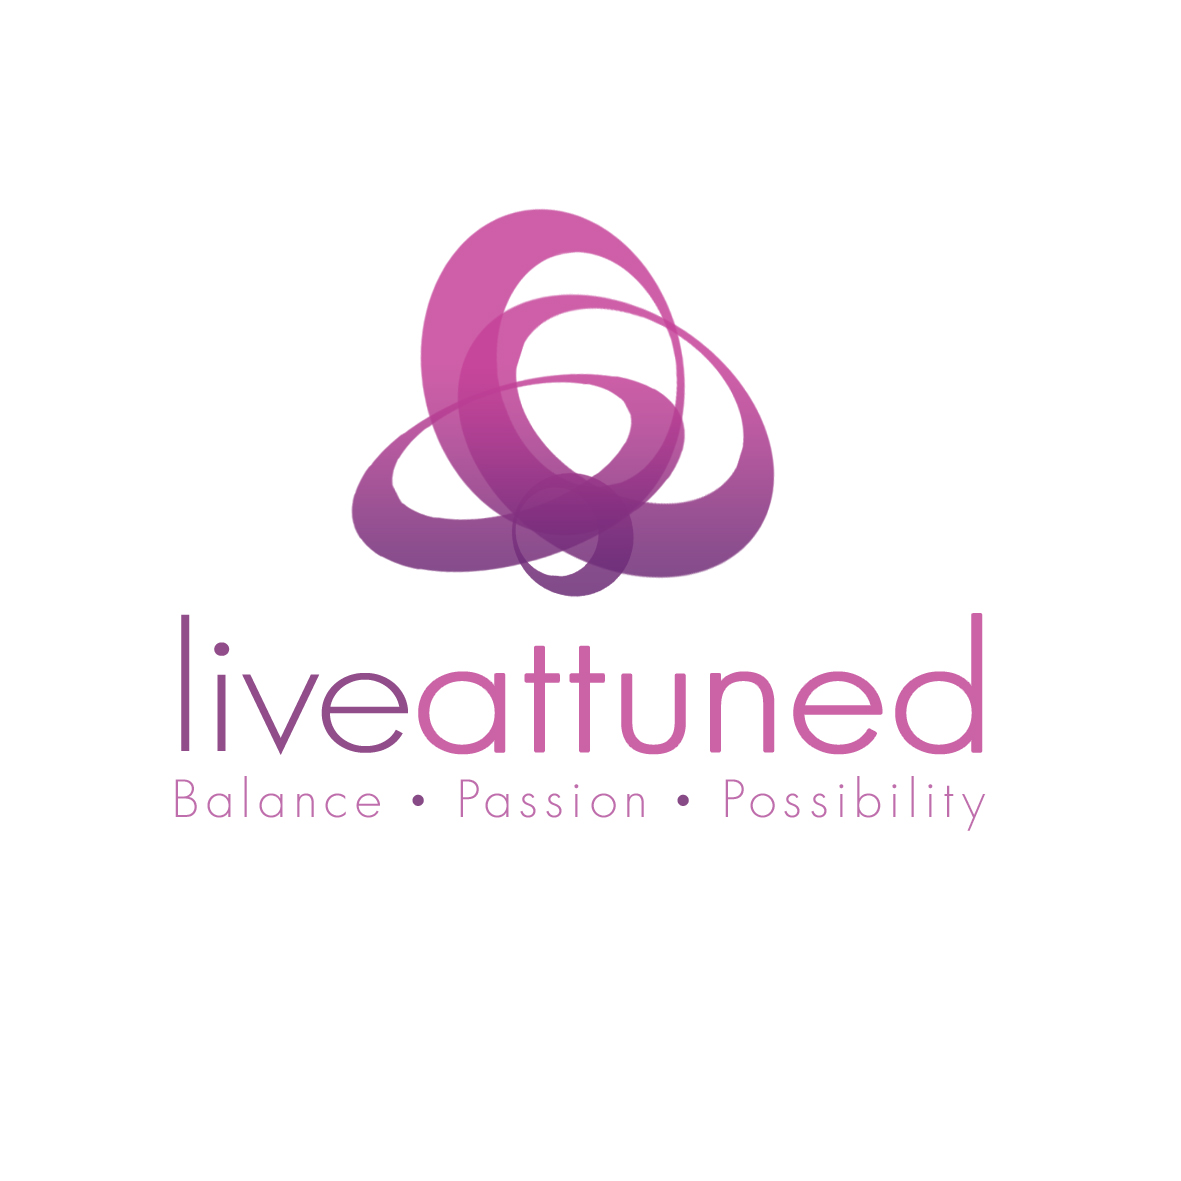 Logo Design by mersina - Entry No. 139 in the Logo Design Contest New Logo Design for Live Attuned.